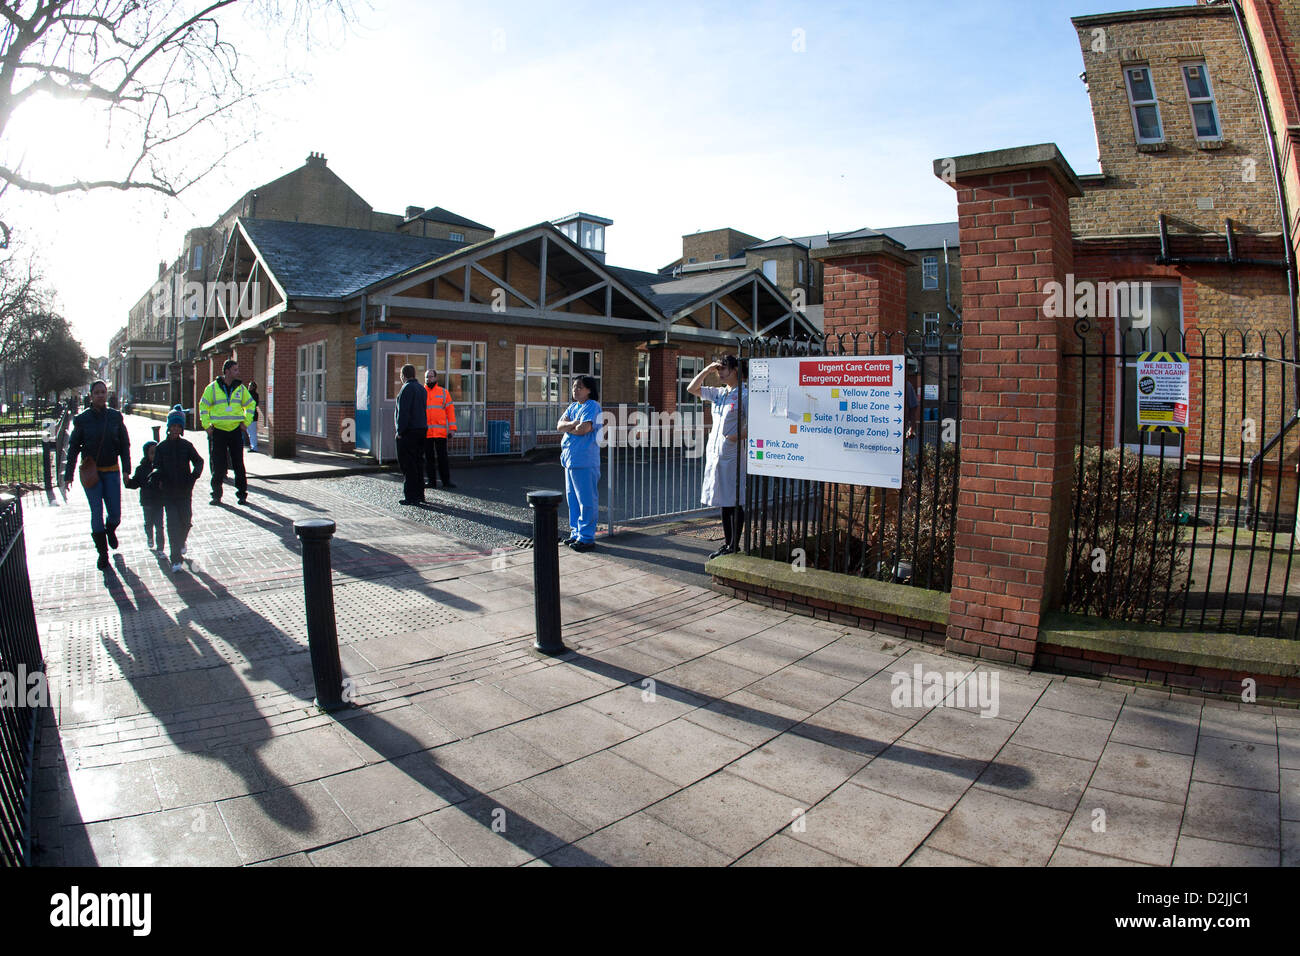 London UK. 26th January 2013. . Workers at Lewisham hospital step out to see the thousands of local people marching - Stock Image